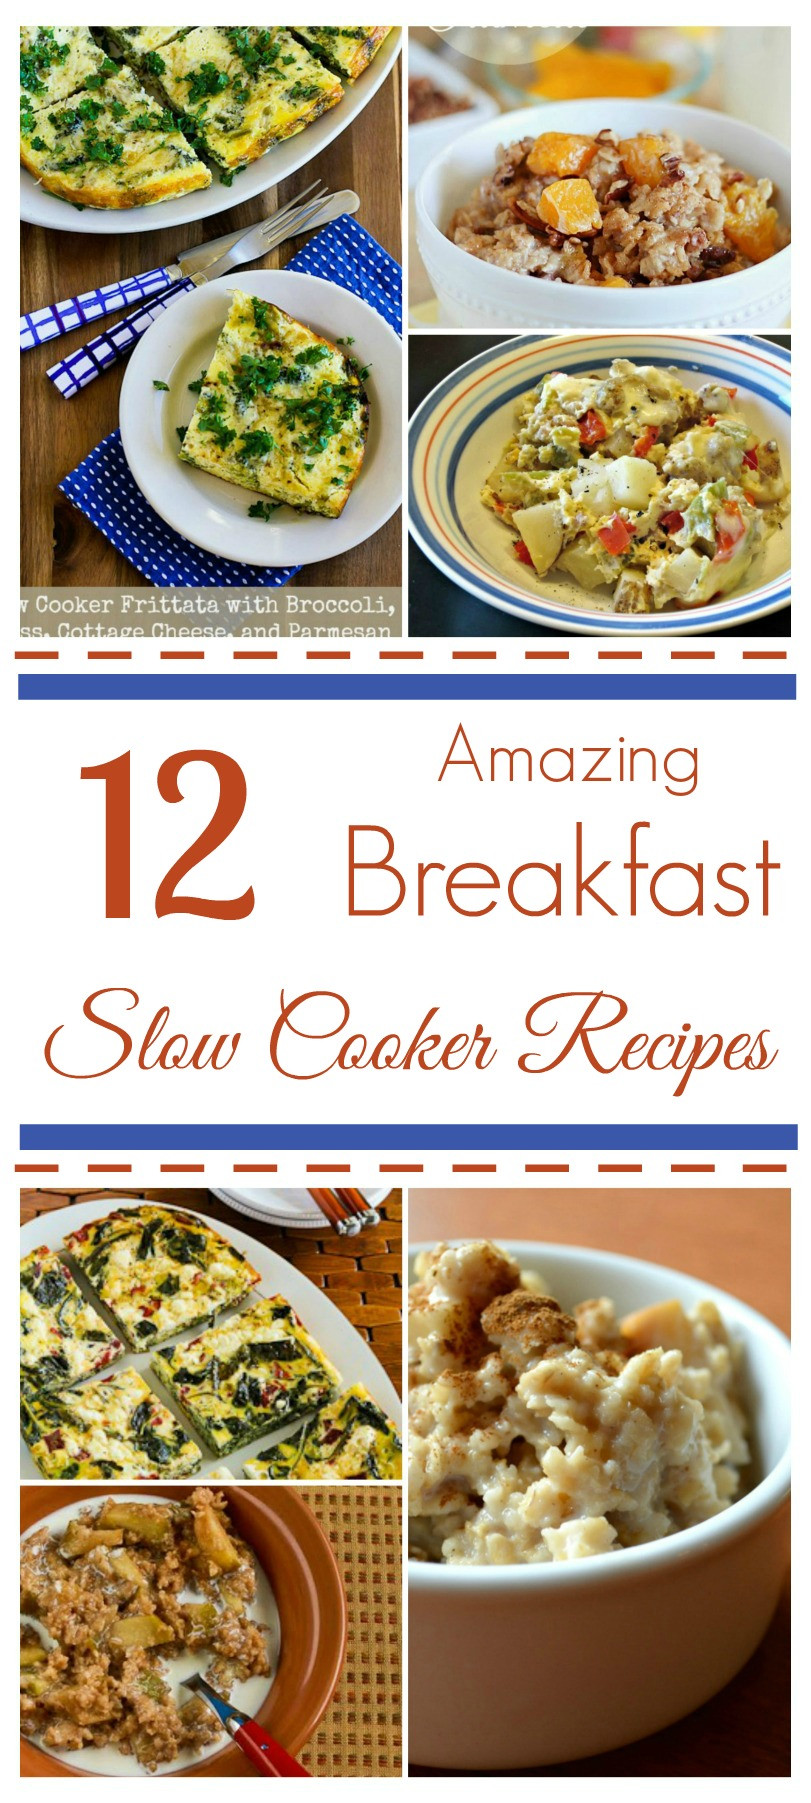 Amazing Breakfast Recipes  12 Amazing Slow Cooker Recipes